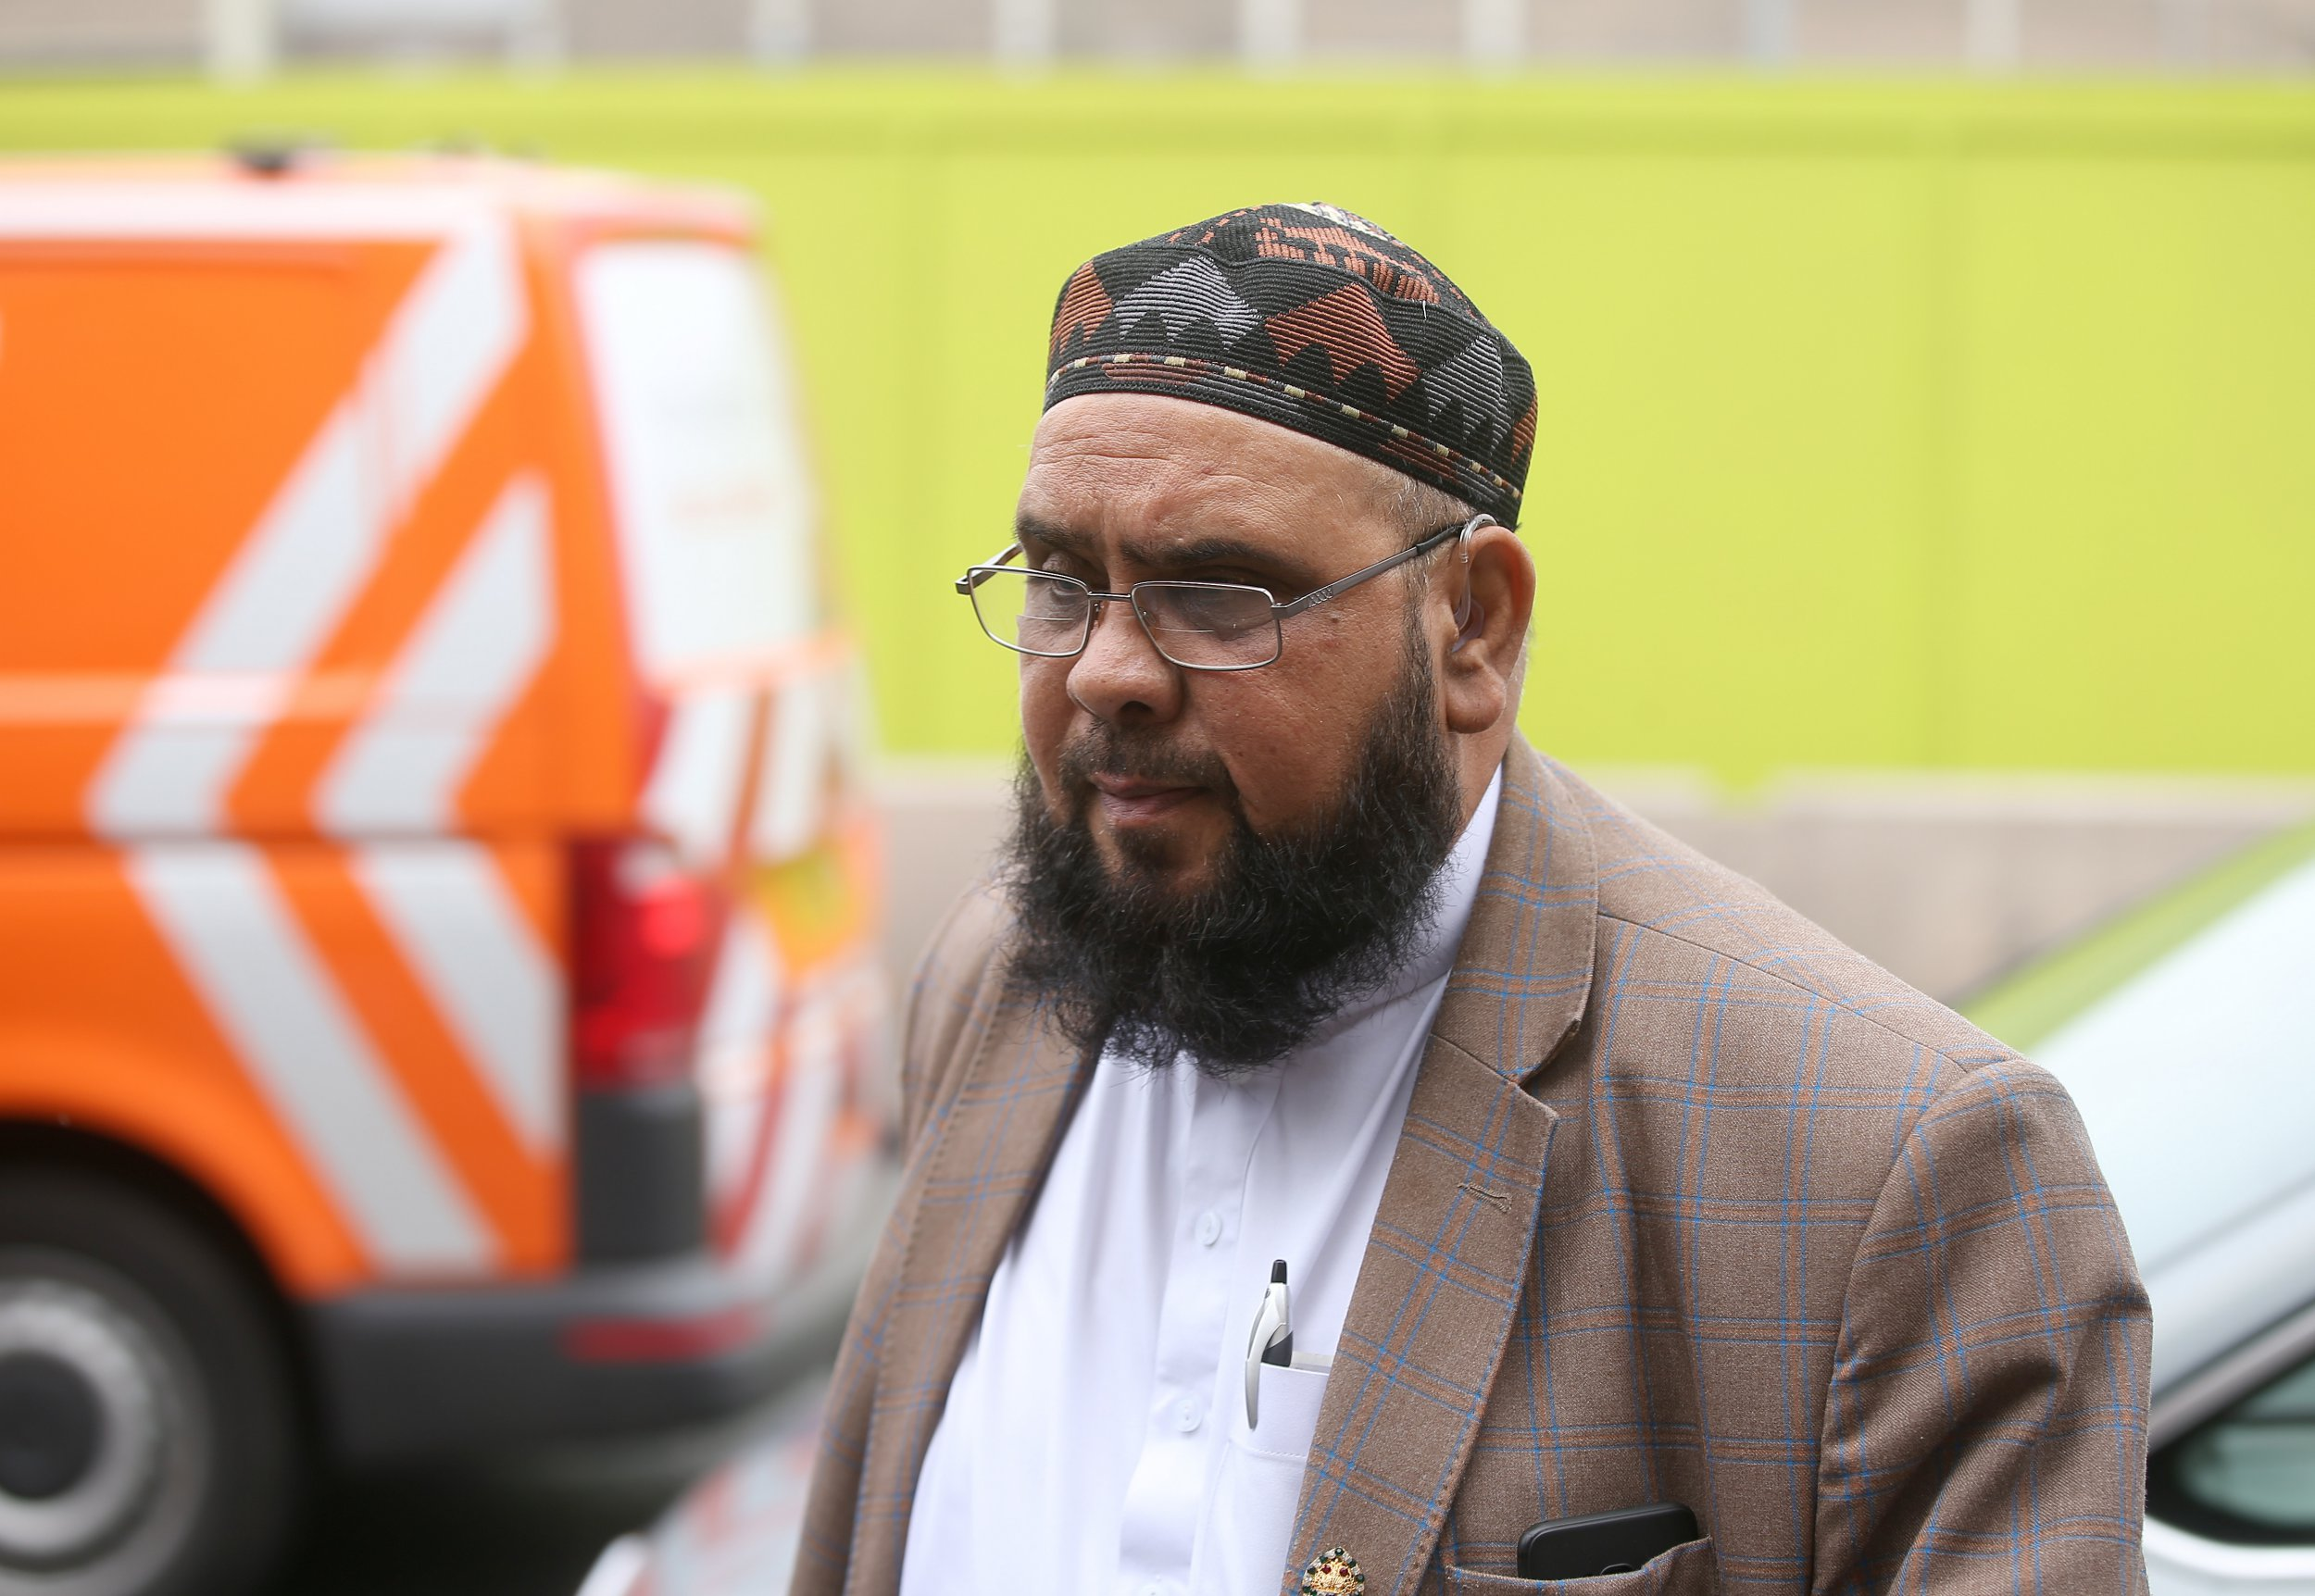 """A former imam has been jailed for five years after he abused a child at a mosque in Nottingham. Speaking about his ordeal at the hands of imam Mohammed Rabani as a boy, the victim said the actions of the spiritual leader were """"beyond redemption"""". Caption: Mohammed Rabani arrives at court"""